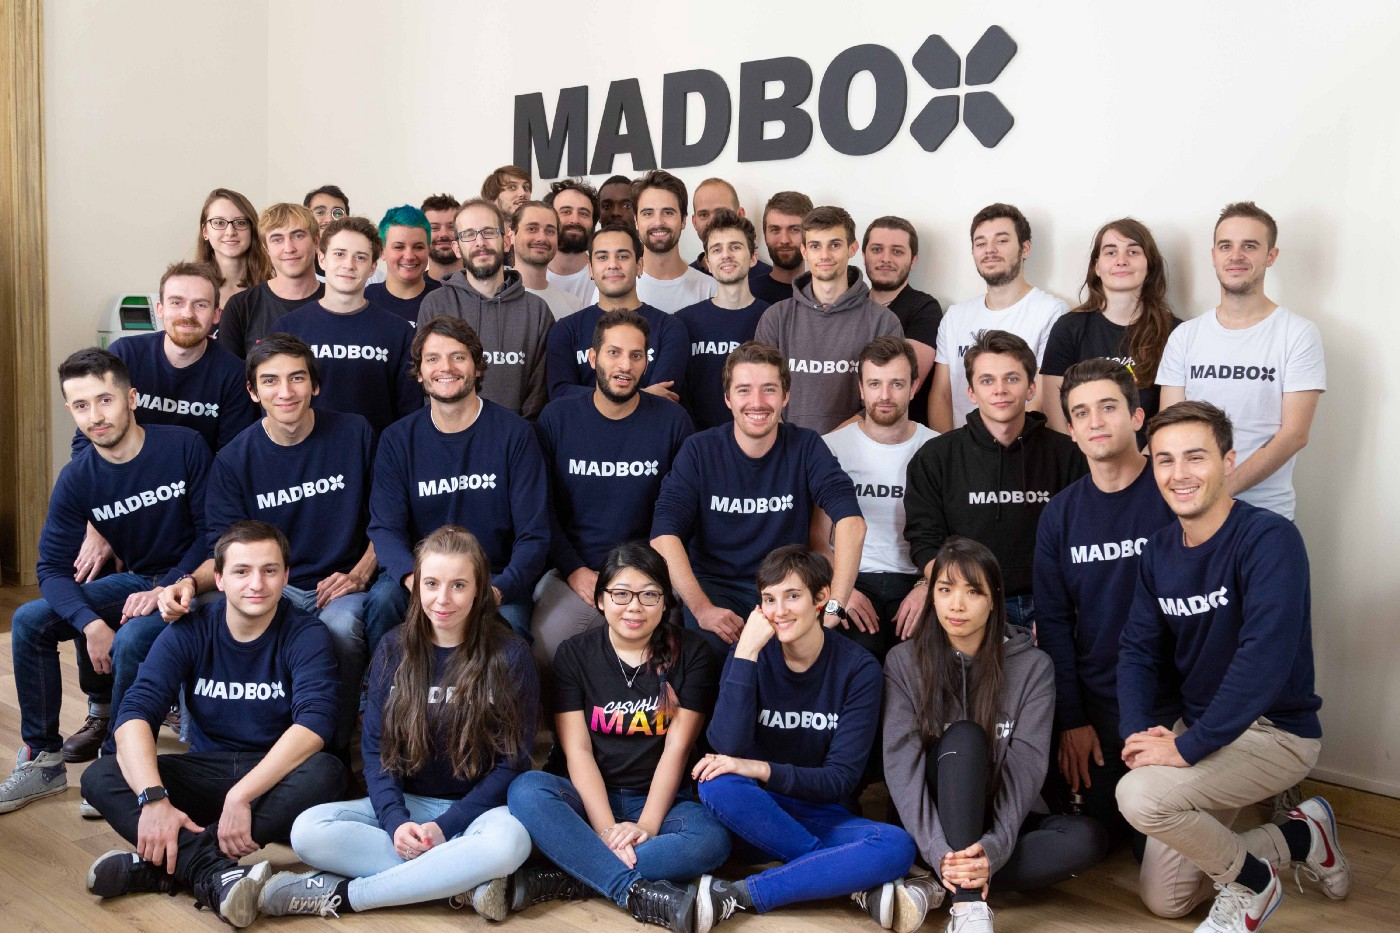 Here you will see the team of people at Madbox Paris gathered for a group photo. Bright with smiles and wearing Madbox branded clothing, they're ready to great mad things. Picture taken in 2019.